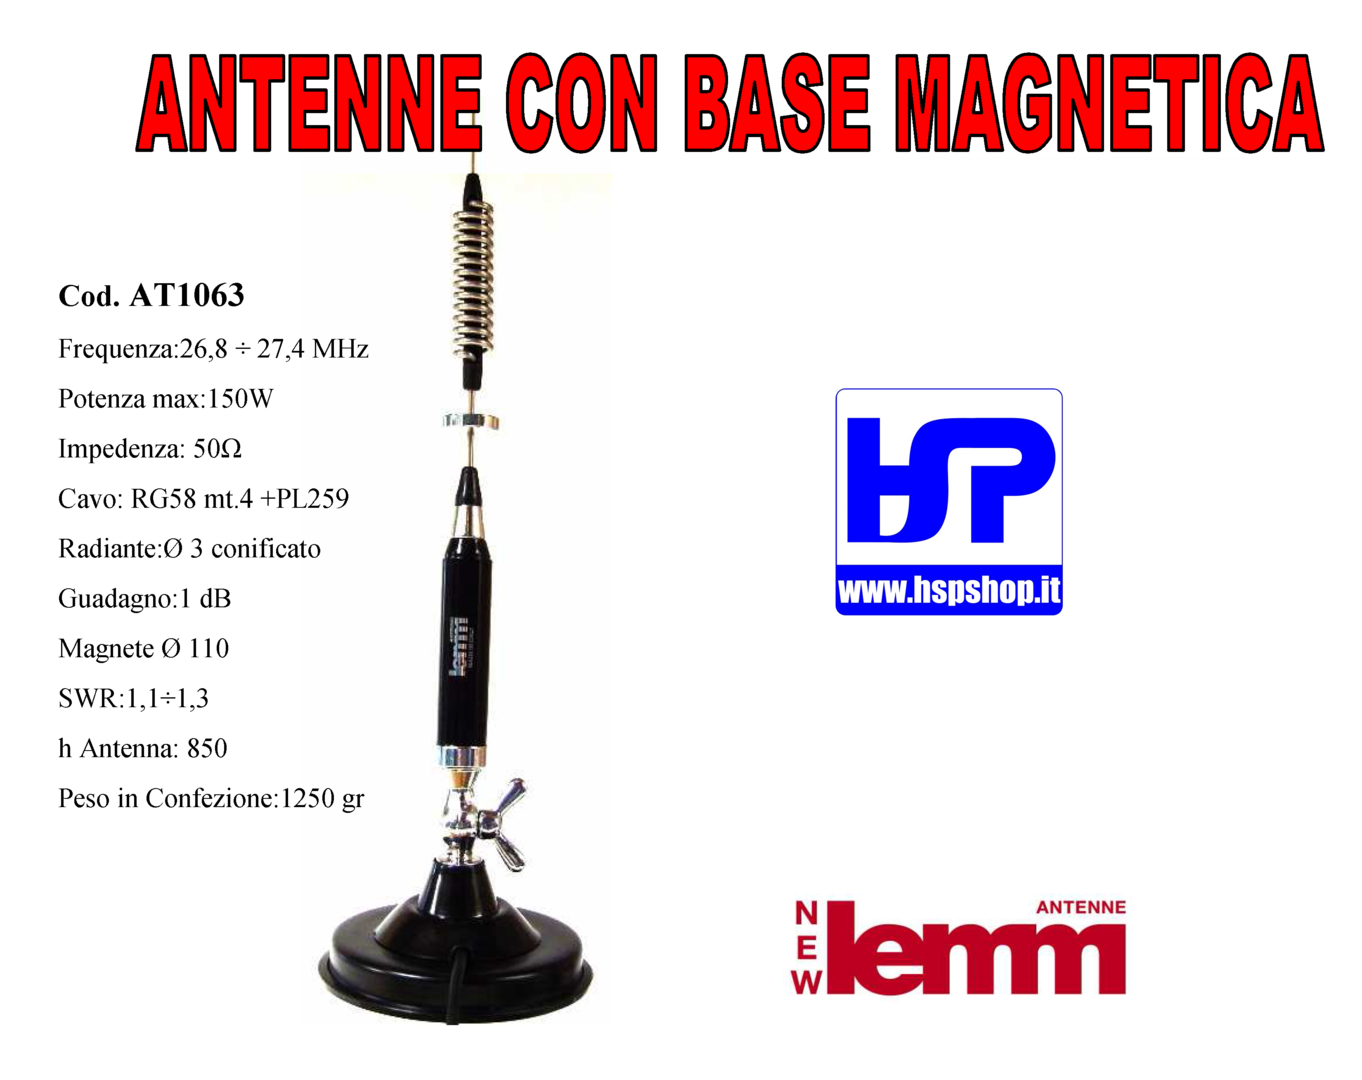 LEMM - AT1063 - ANTENNA CB CON BASE MAGNETICA